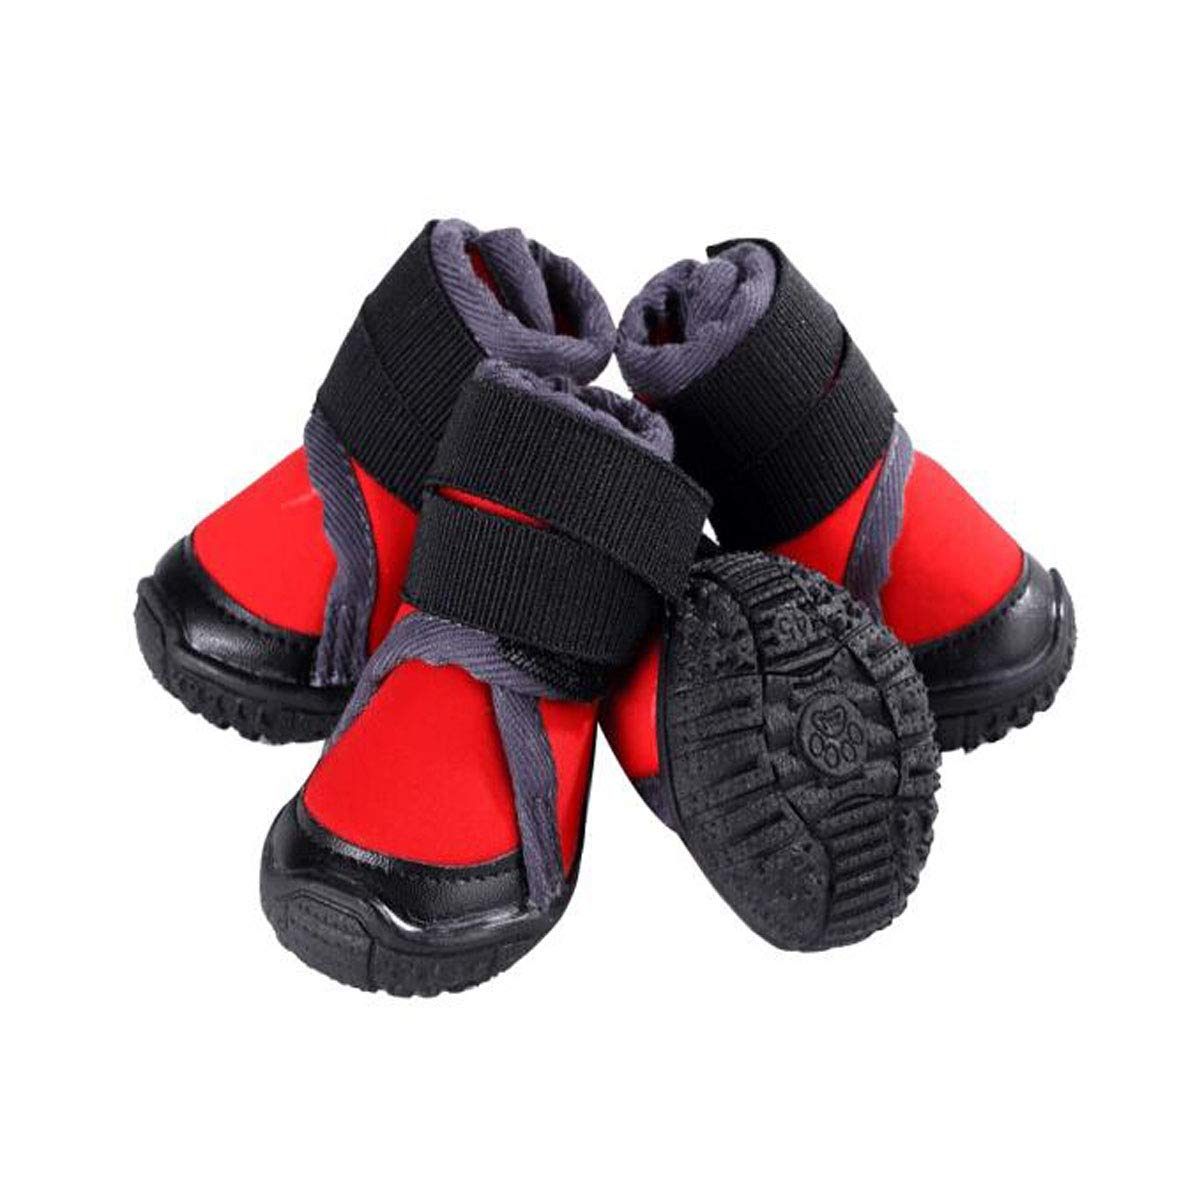 Red 60 Hongyushanghang Waterproof NonSlip Hiking Out Pet shoes, Medium and Large Dogs Plus Velvet Warm, Red 45 Yards fine (color   Red, Size   60 )